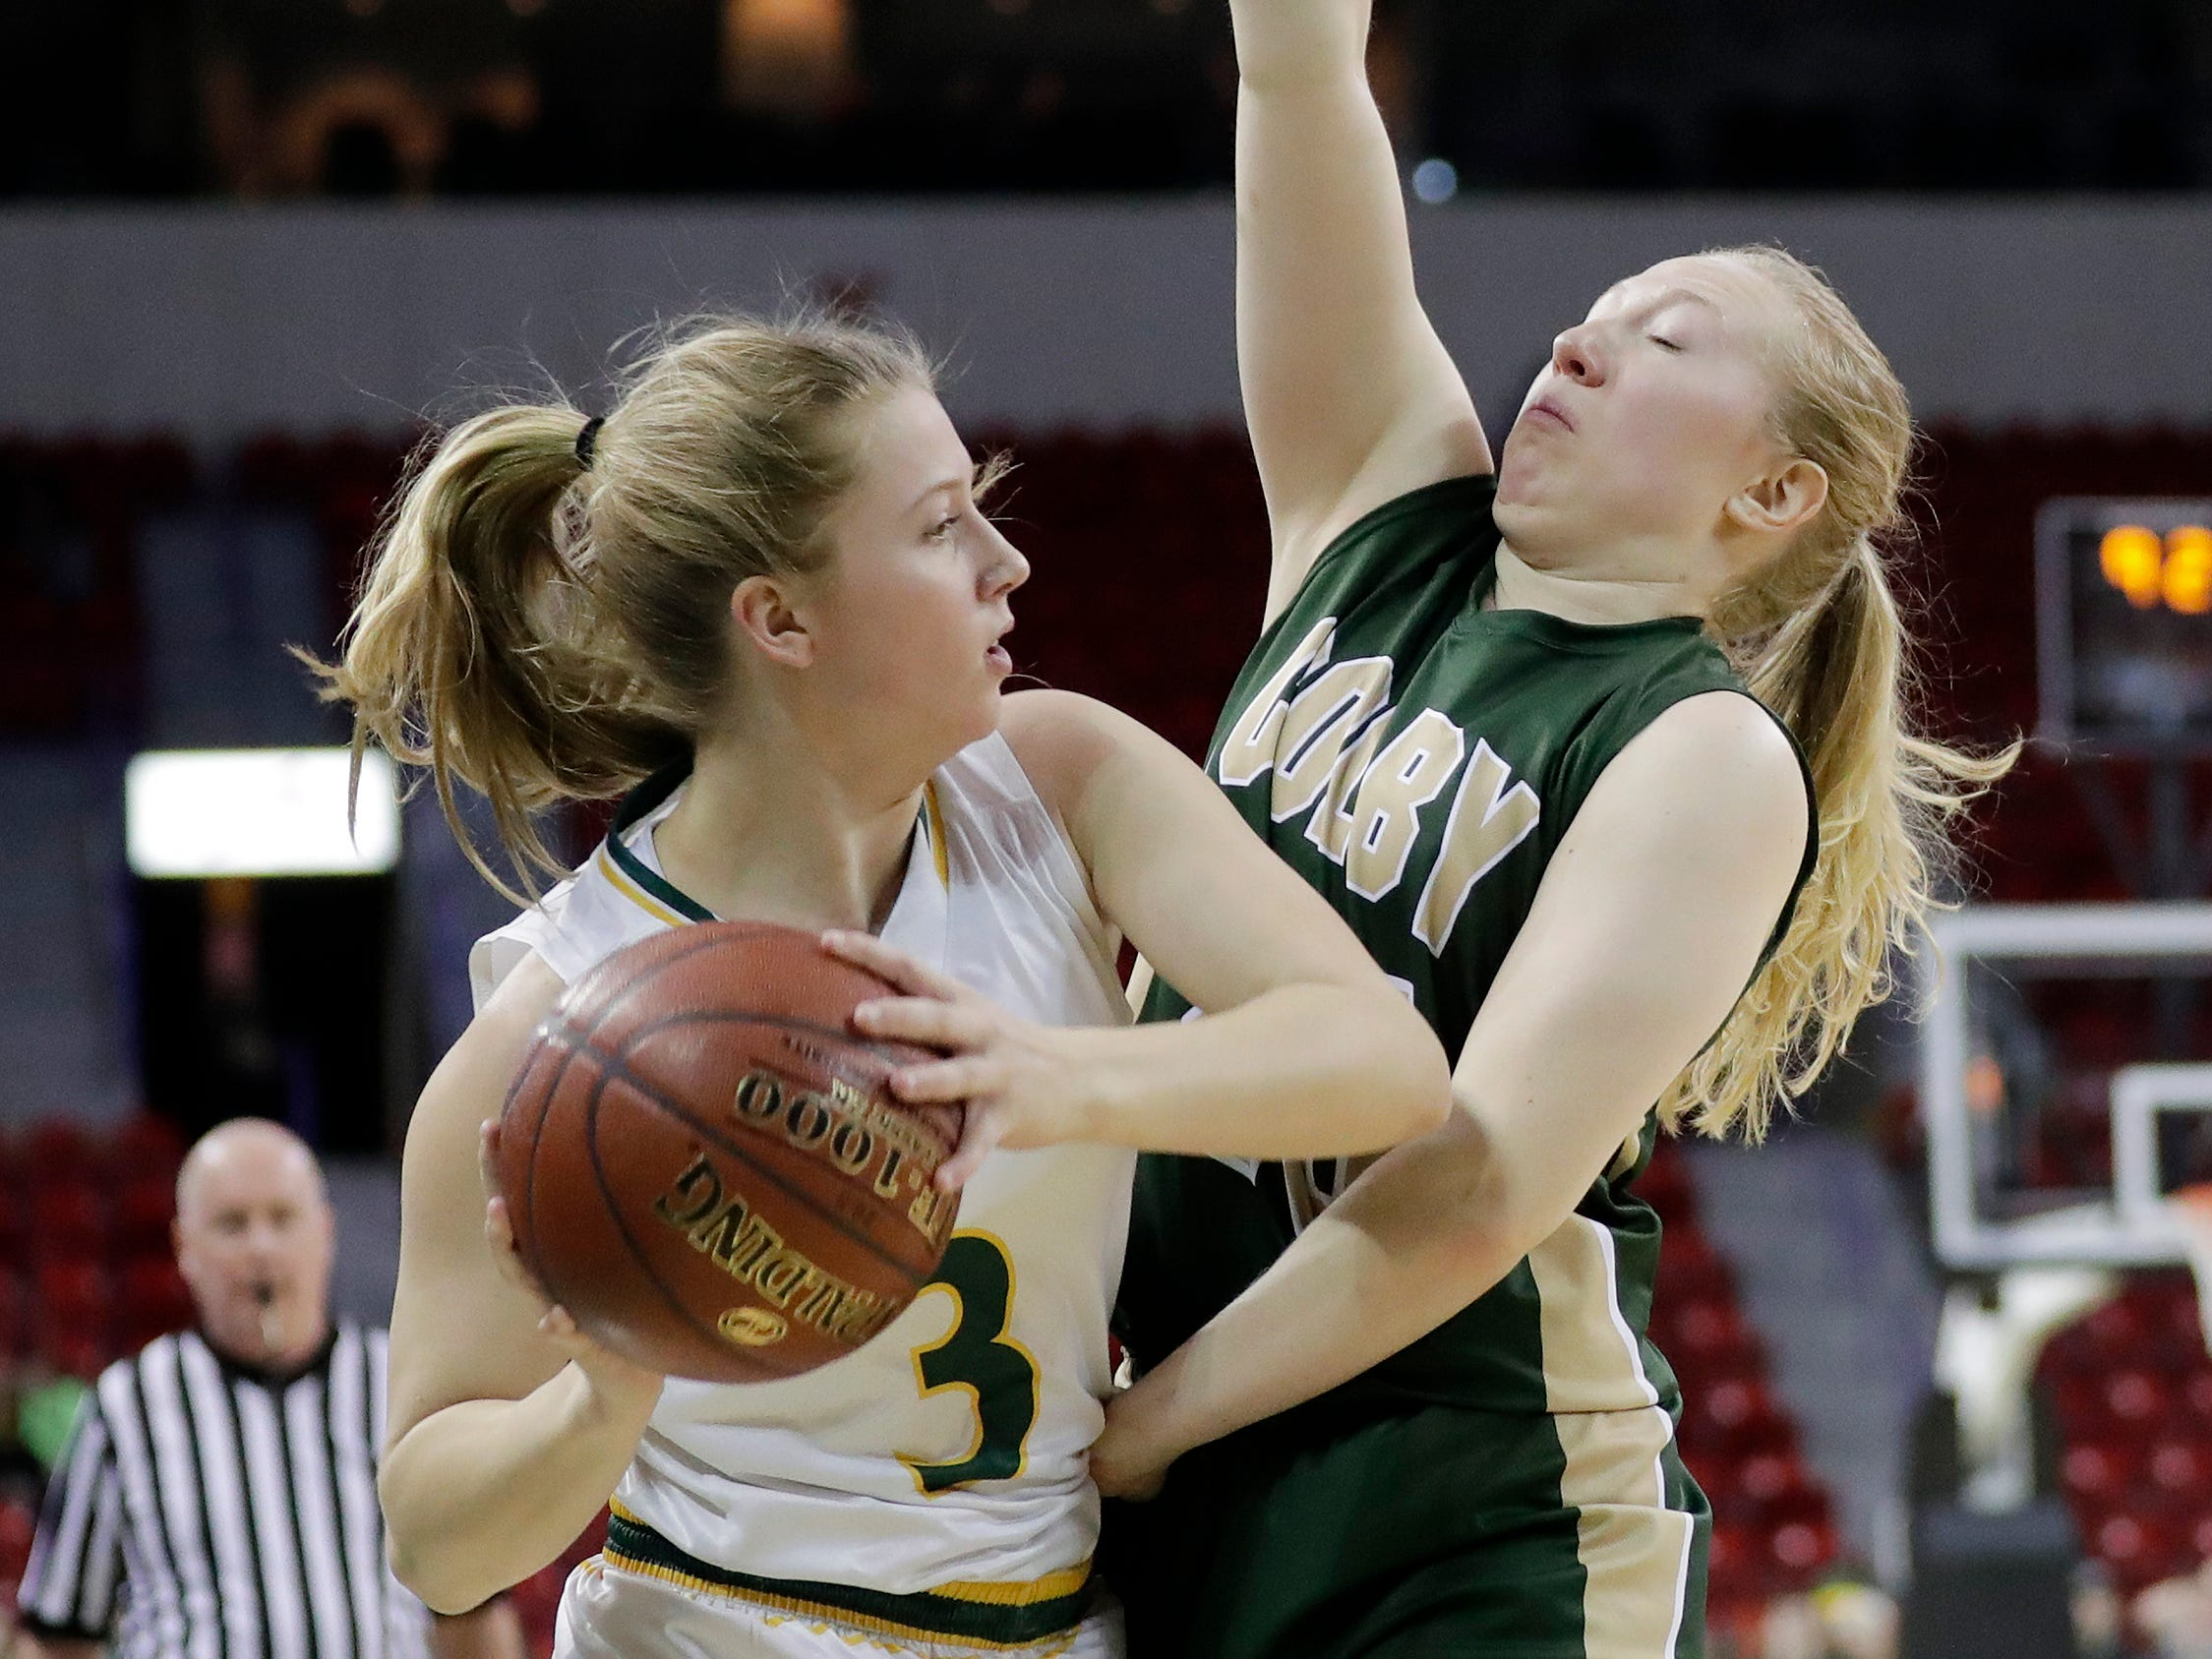 Colby's Ashley Streveler (25) guards Melrose-Mindoro's Teagan Frey (3) in a Division 3 semifinal at the WIAA state girls basketball tournament at the Resch Center on Thursday, March 7, 2019, in Ashwaubenon, Wis.